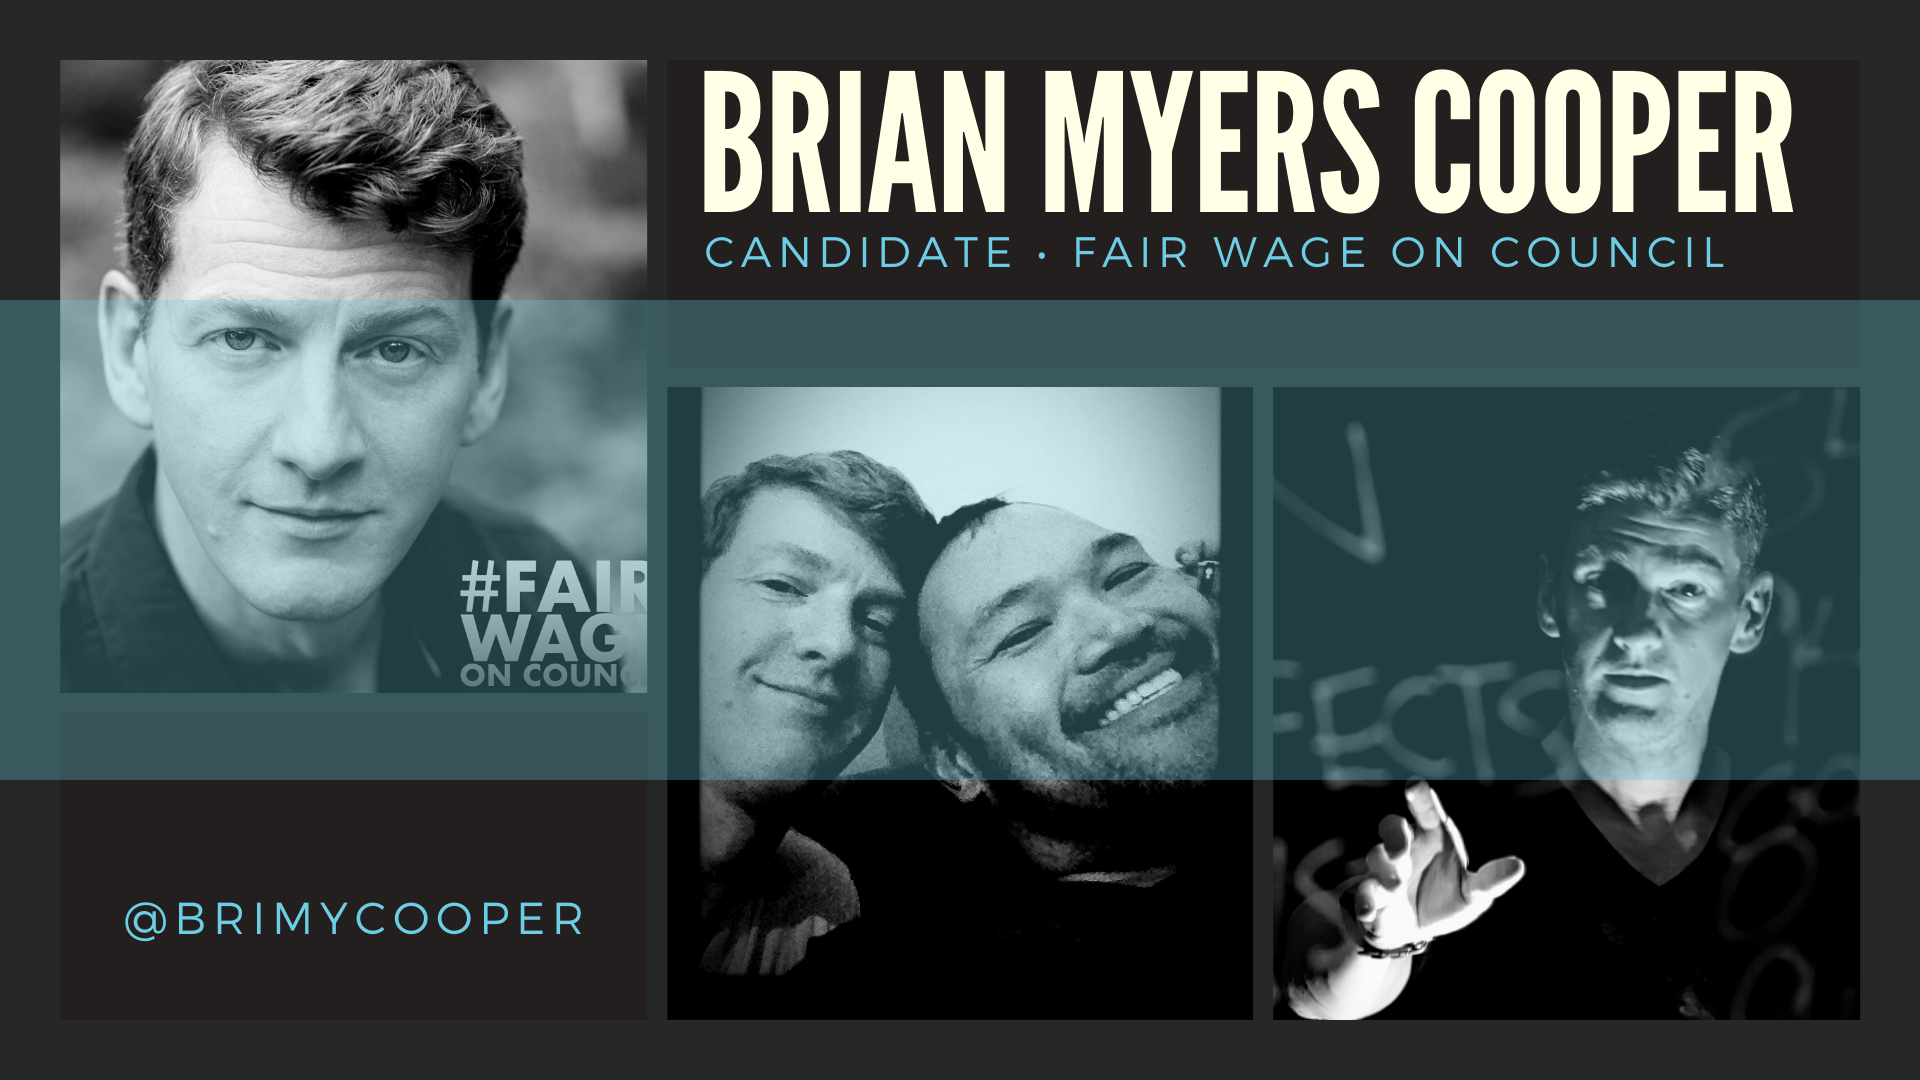 Brian Myers Cooper